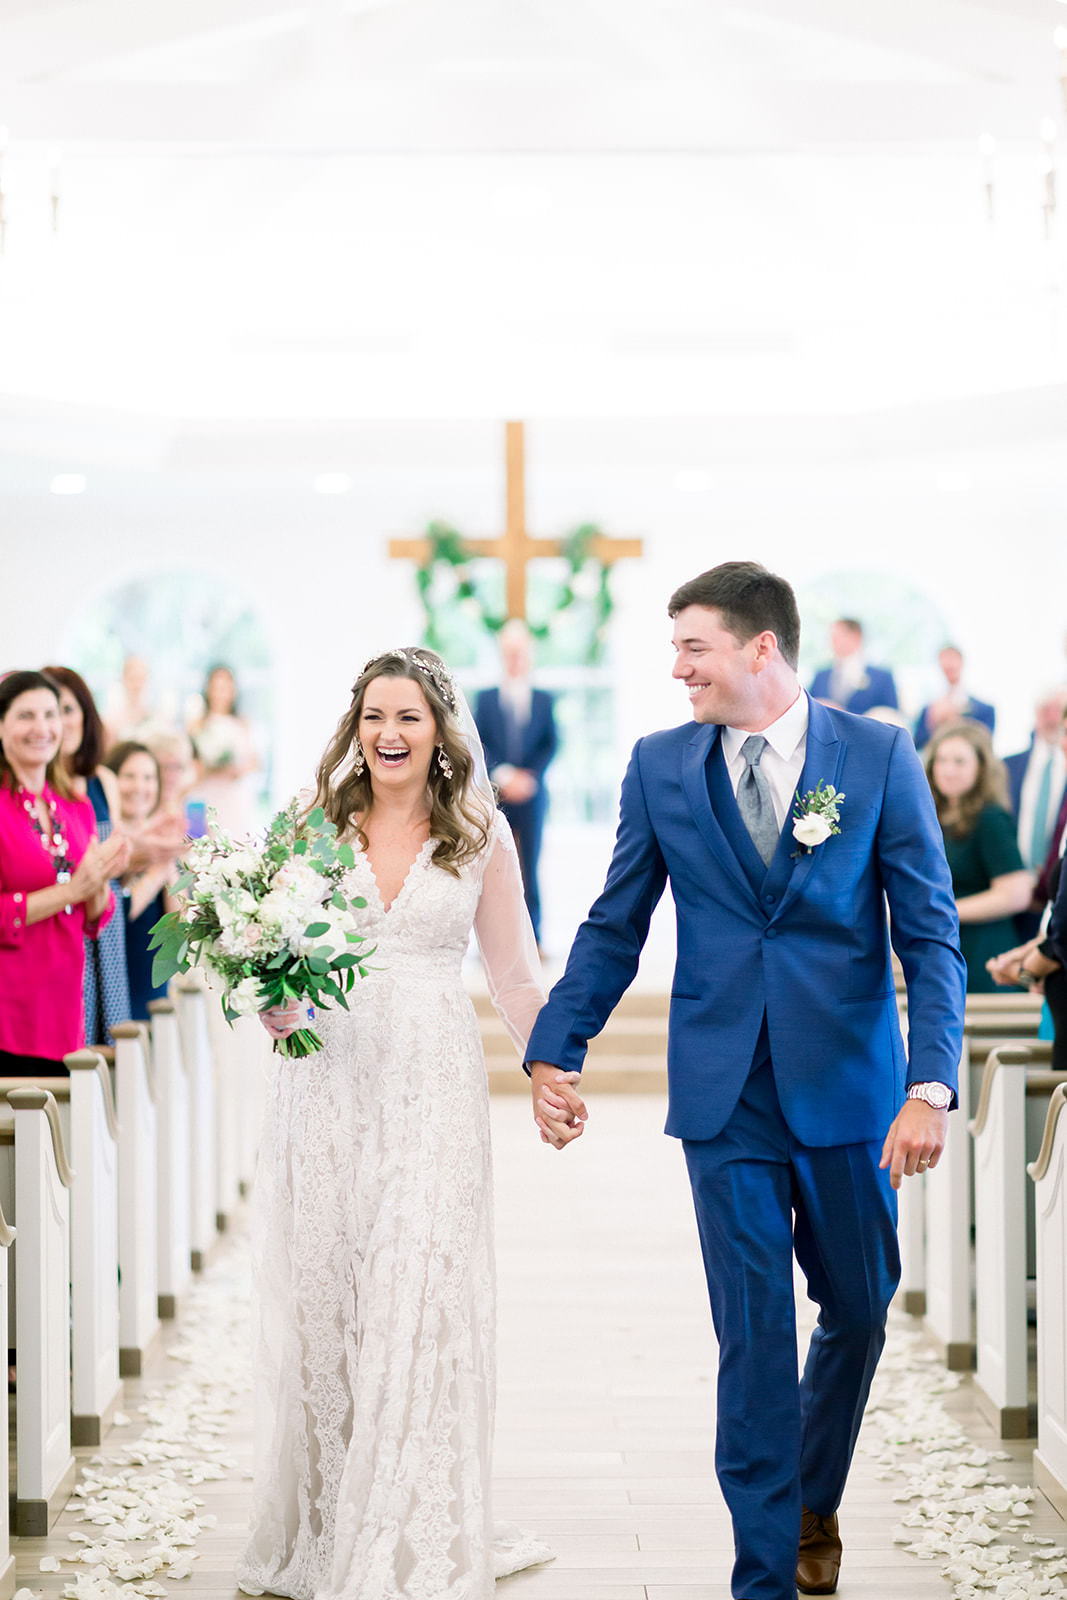 Boho Inspired Florida Bride and Groom Just Married at Wedding Recessional Down the Aisle Portrait | Tampa Bay Wedding Ceremony Venue Harborside Chapel | Tampa Bay Wedding Photographers Shauna and Jordon Photography